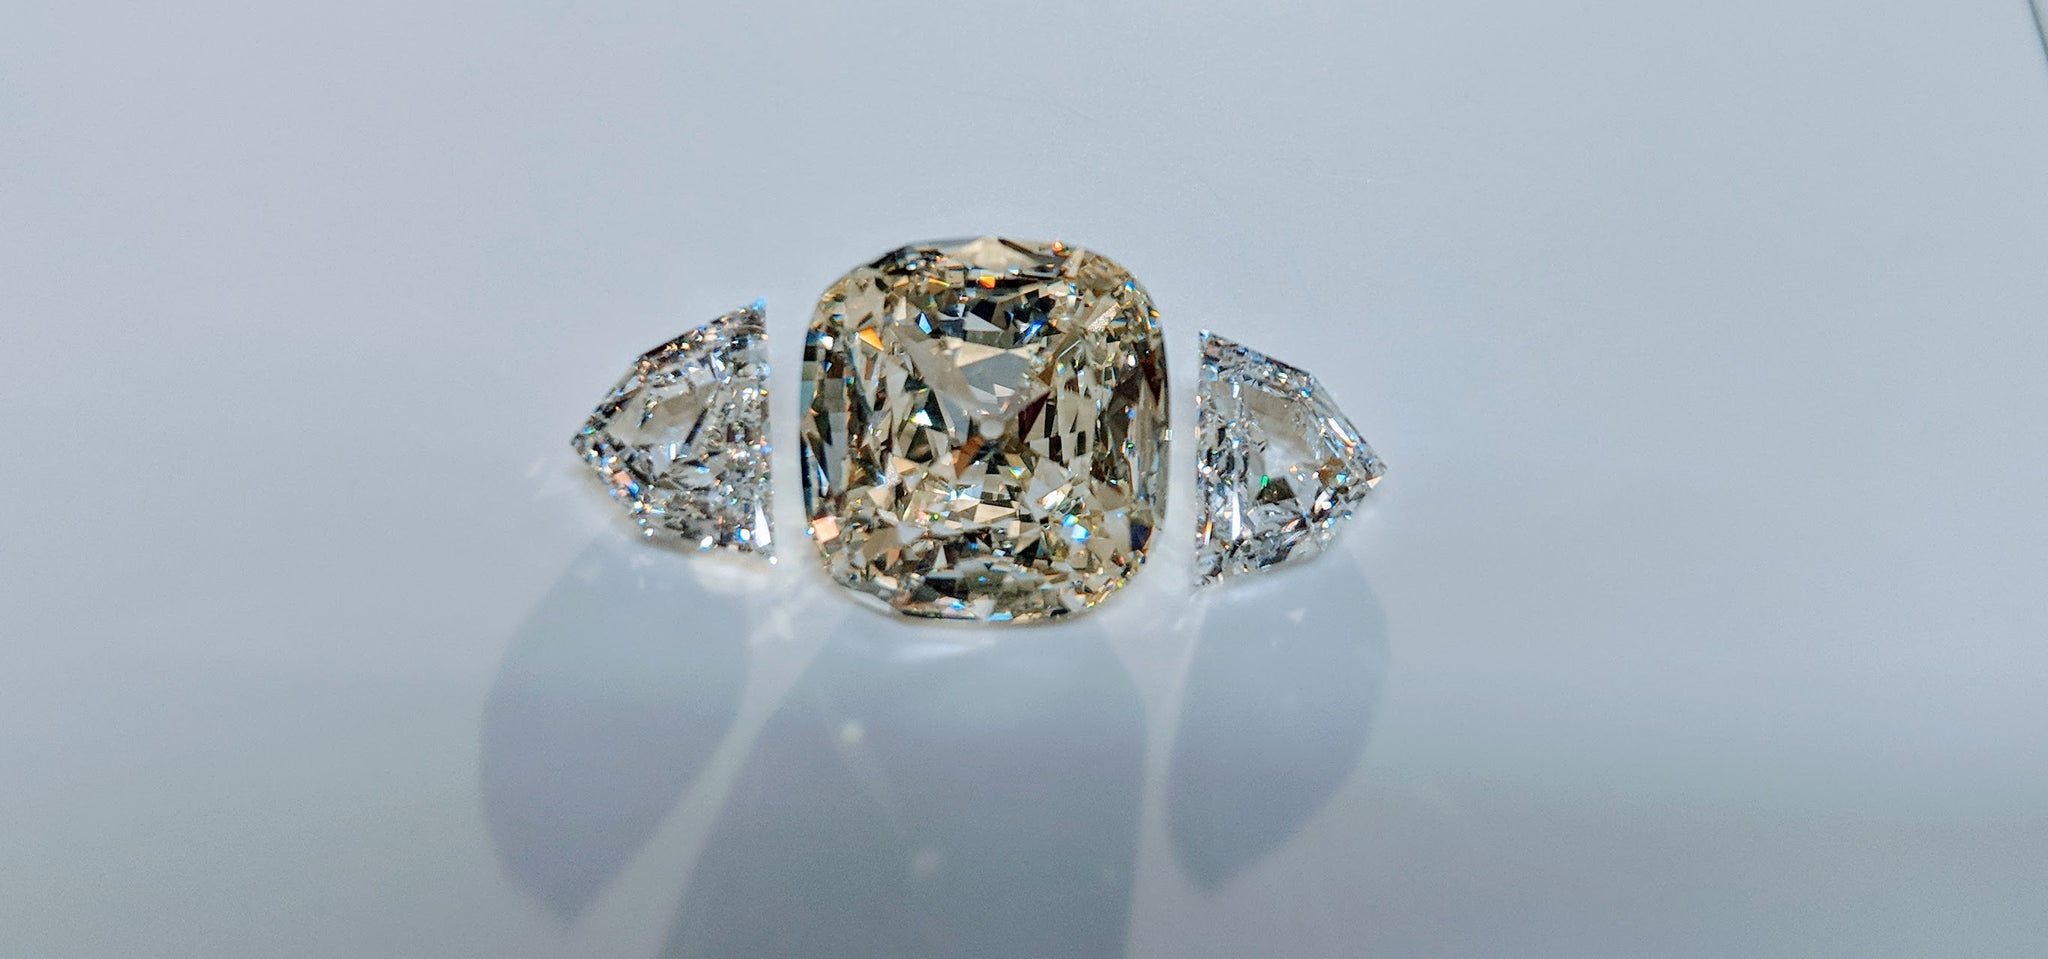 64Facets Diamond Setting with Two Half Shield Step-Cut Diamonds as Side Stones